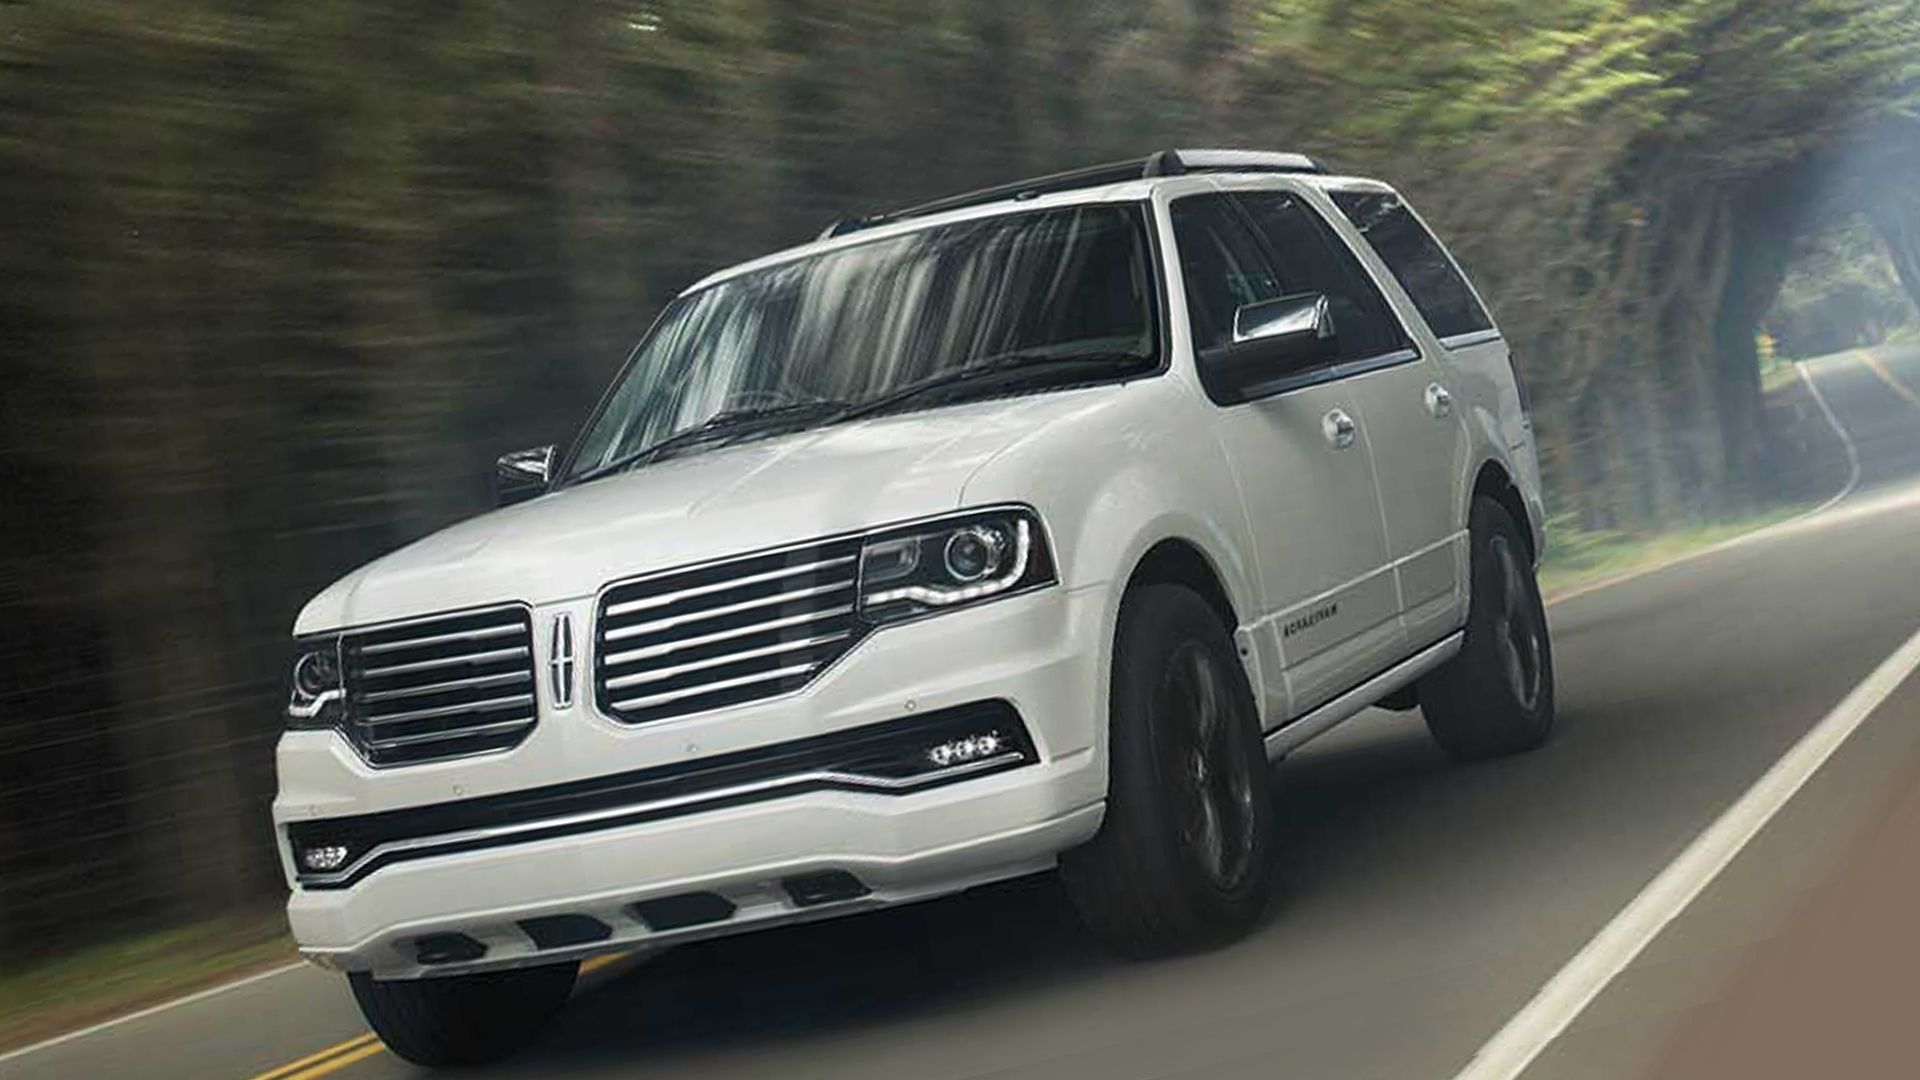 New 2018 Lincoln Navigator Test Drive